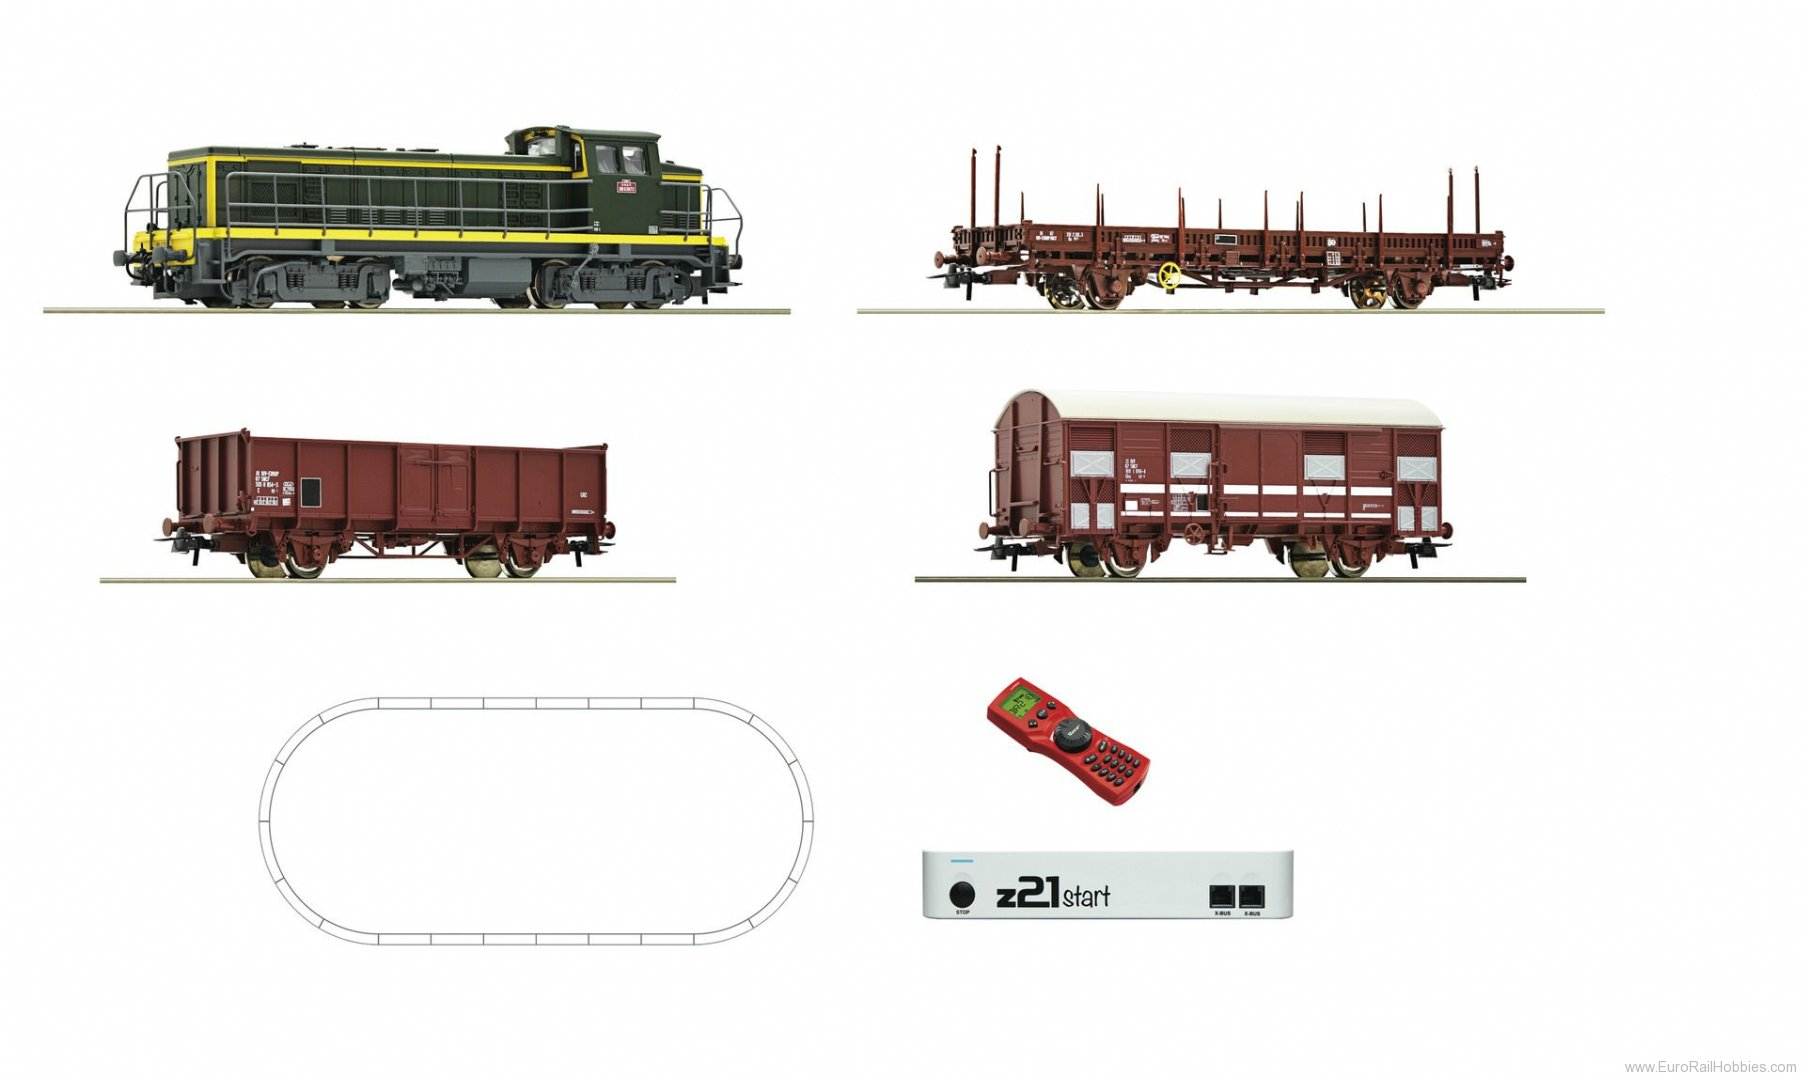 Roco 51300 Digital z21® start Set: Diesel locomotive